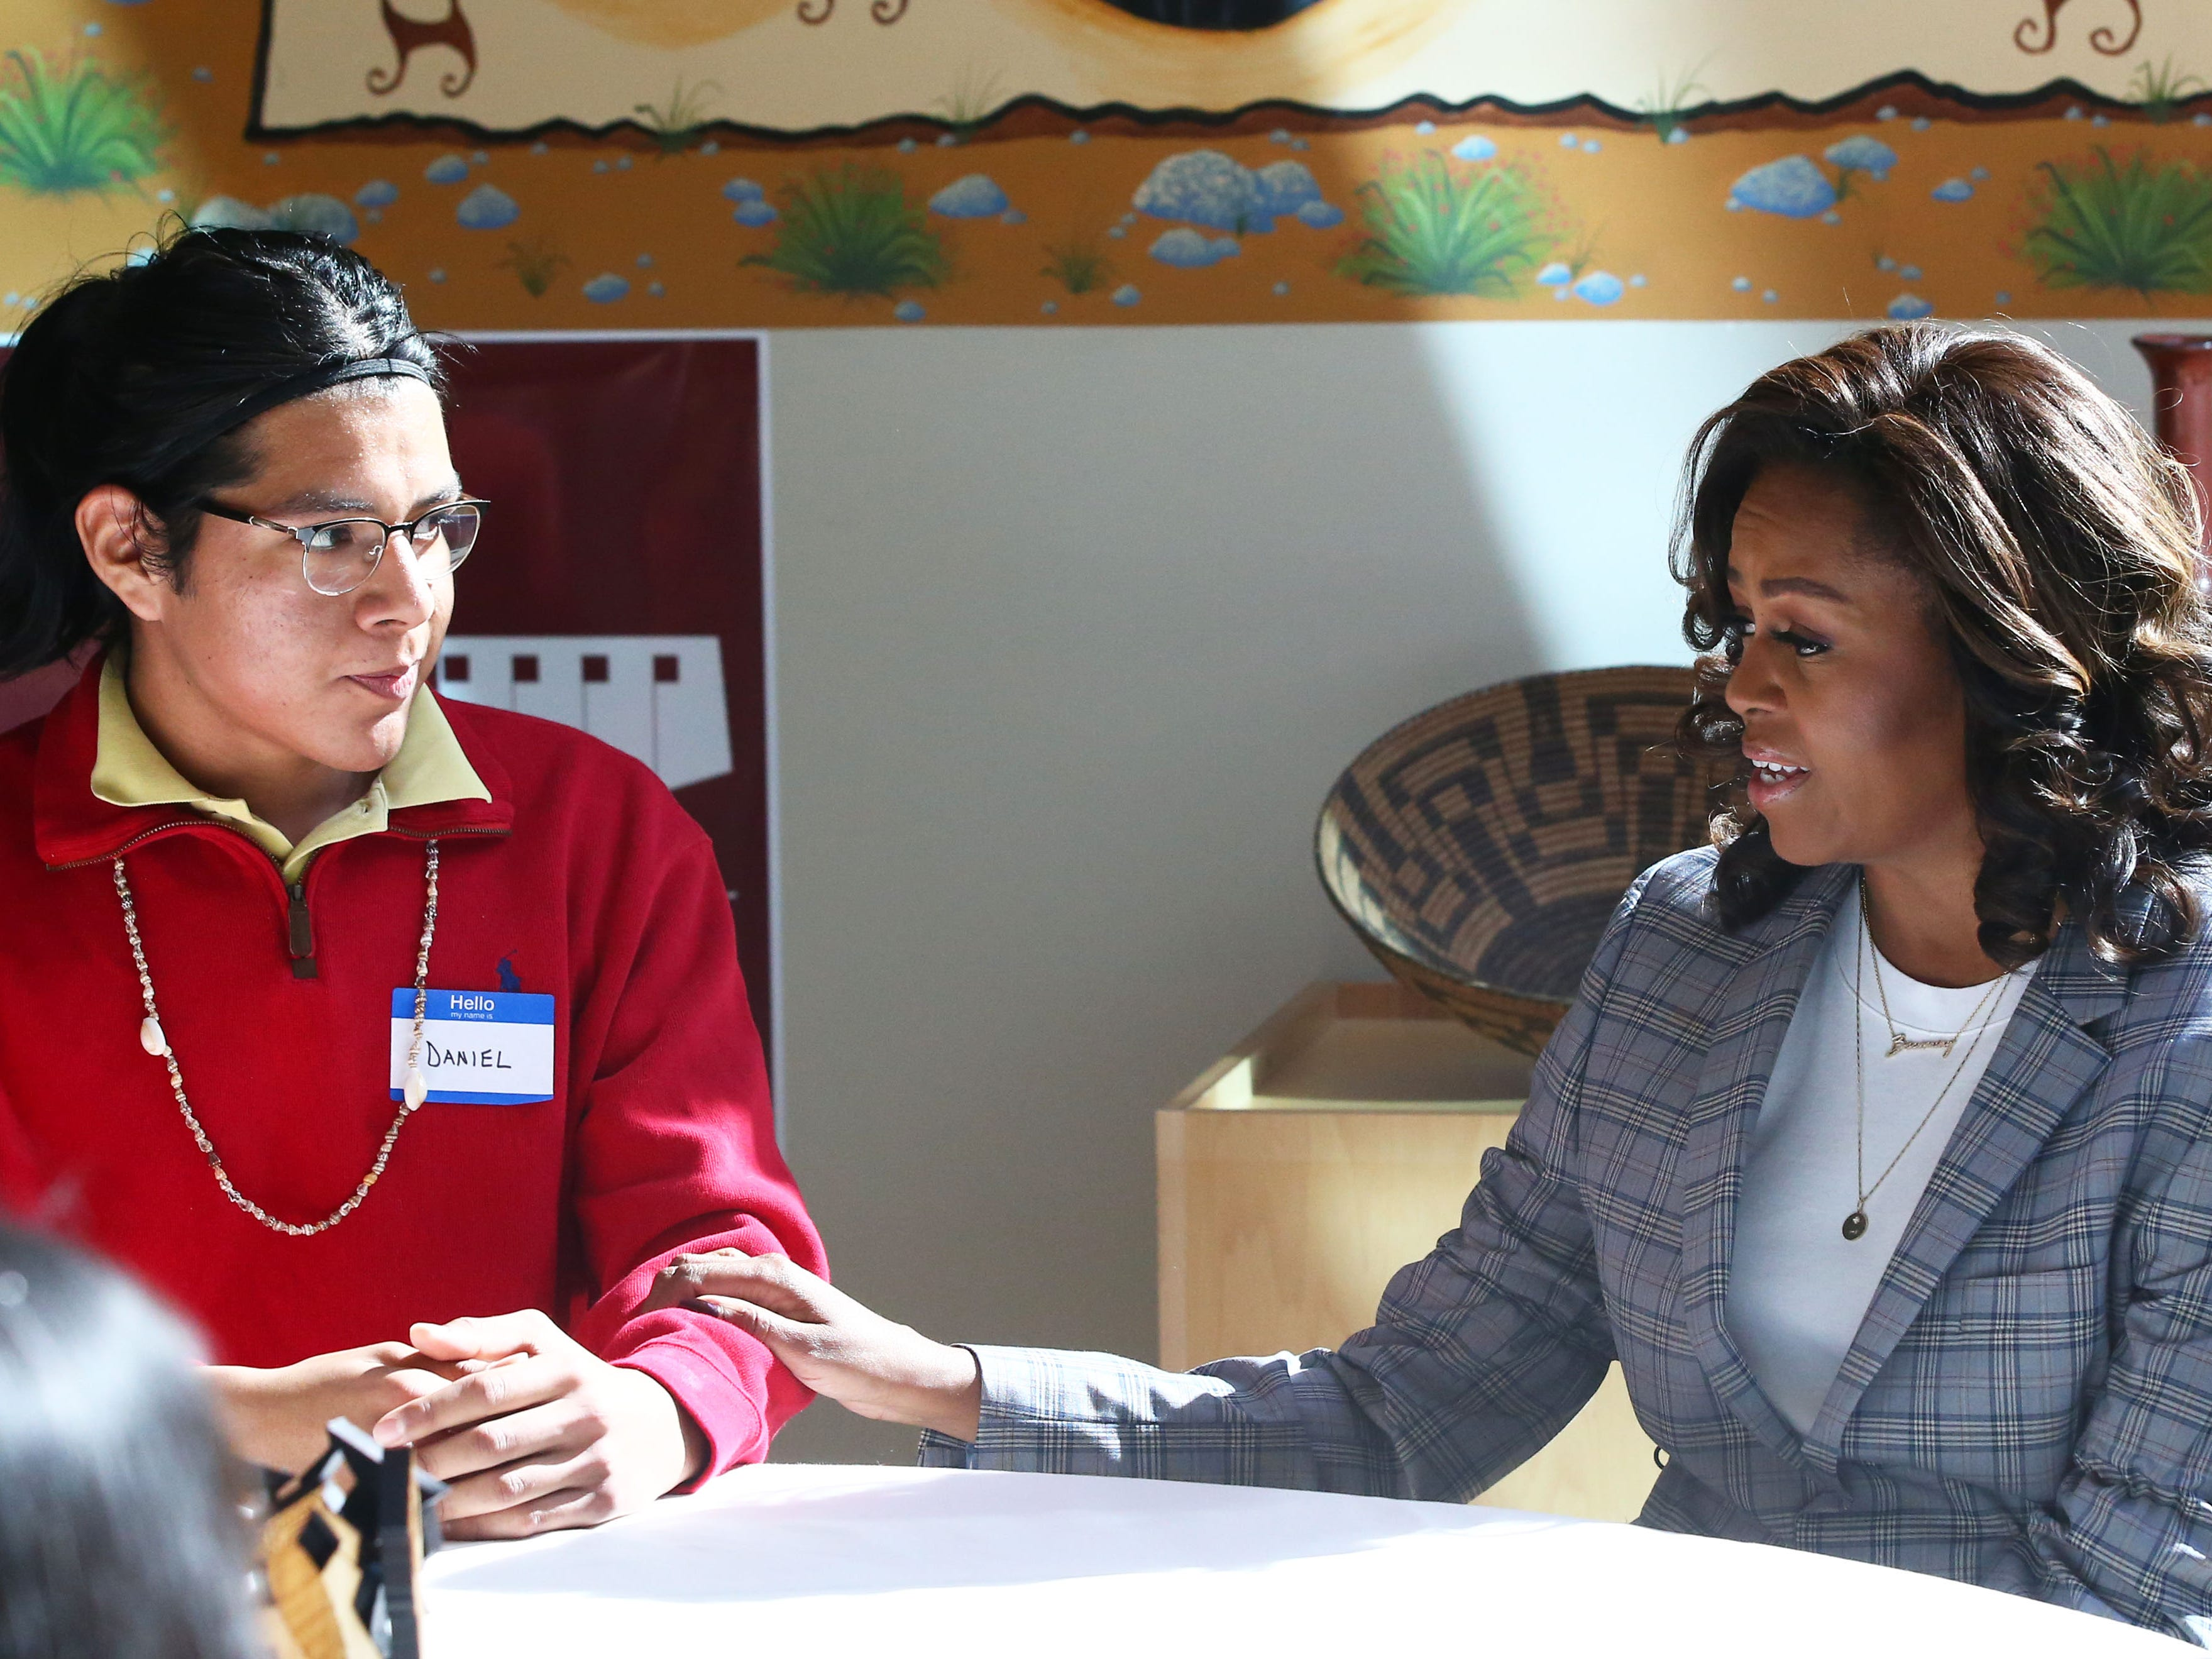 Michelle Obama makes a surprise visit with Gila River Indian Community students at the Huhugam Heritage Center on Feb. 12, 2019 in Chandler.